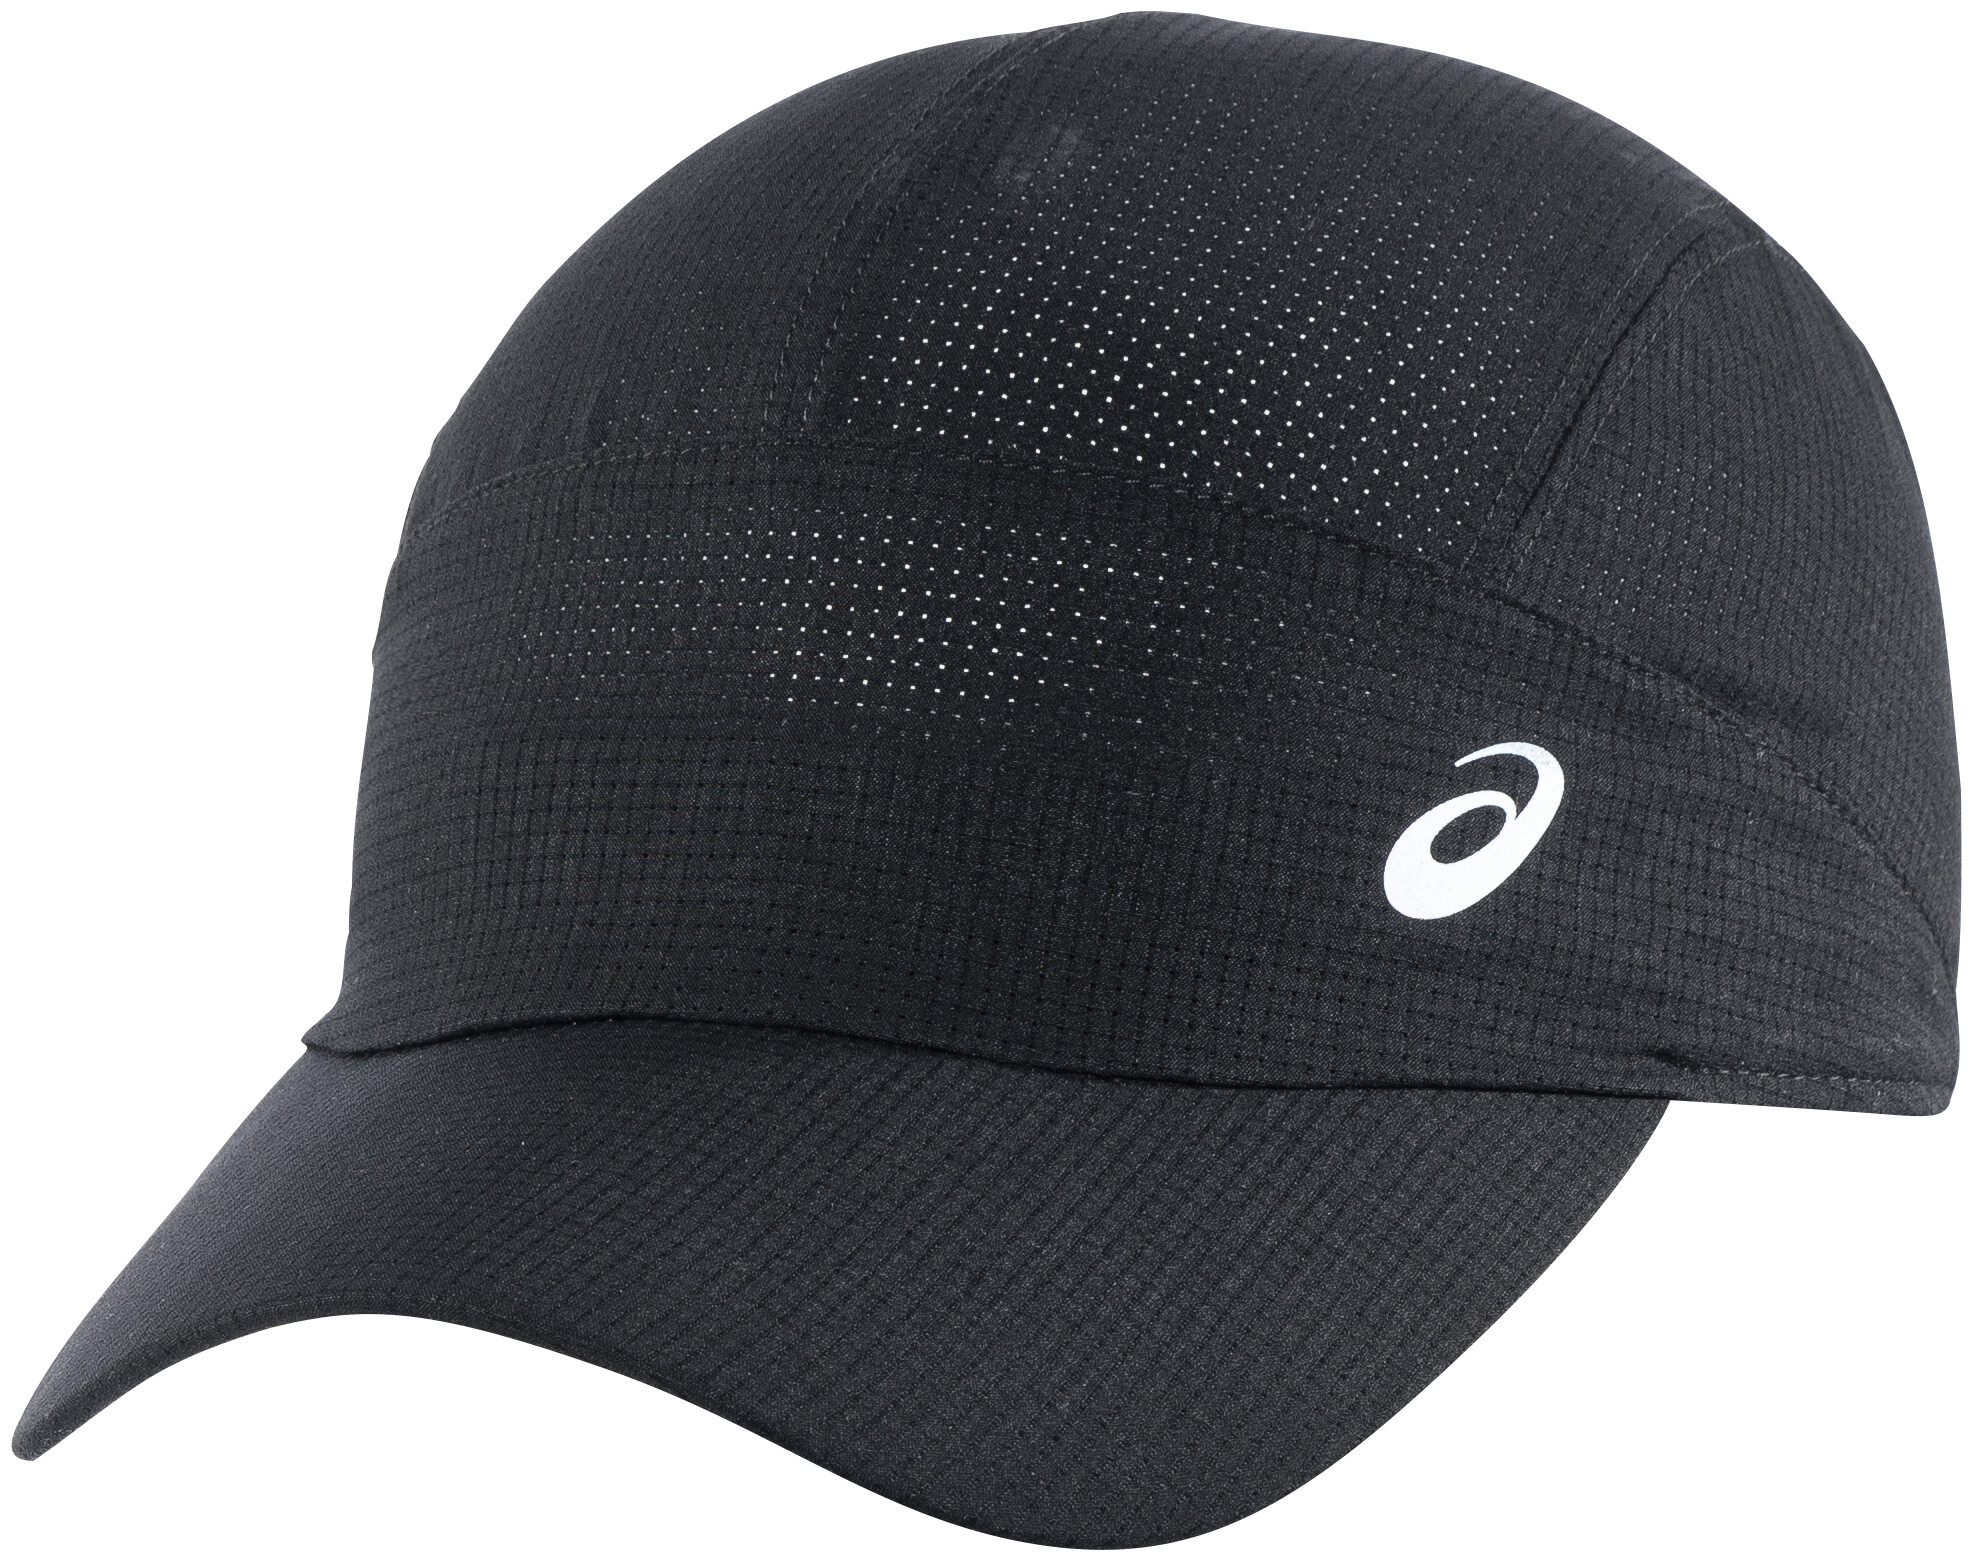 asics Lightweight Hovedbeklædning, performance black (2019) | Headwear